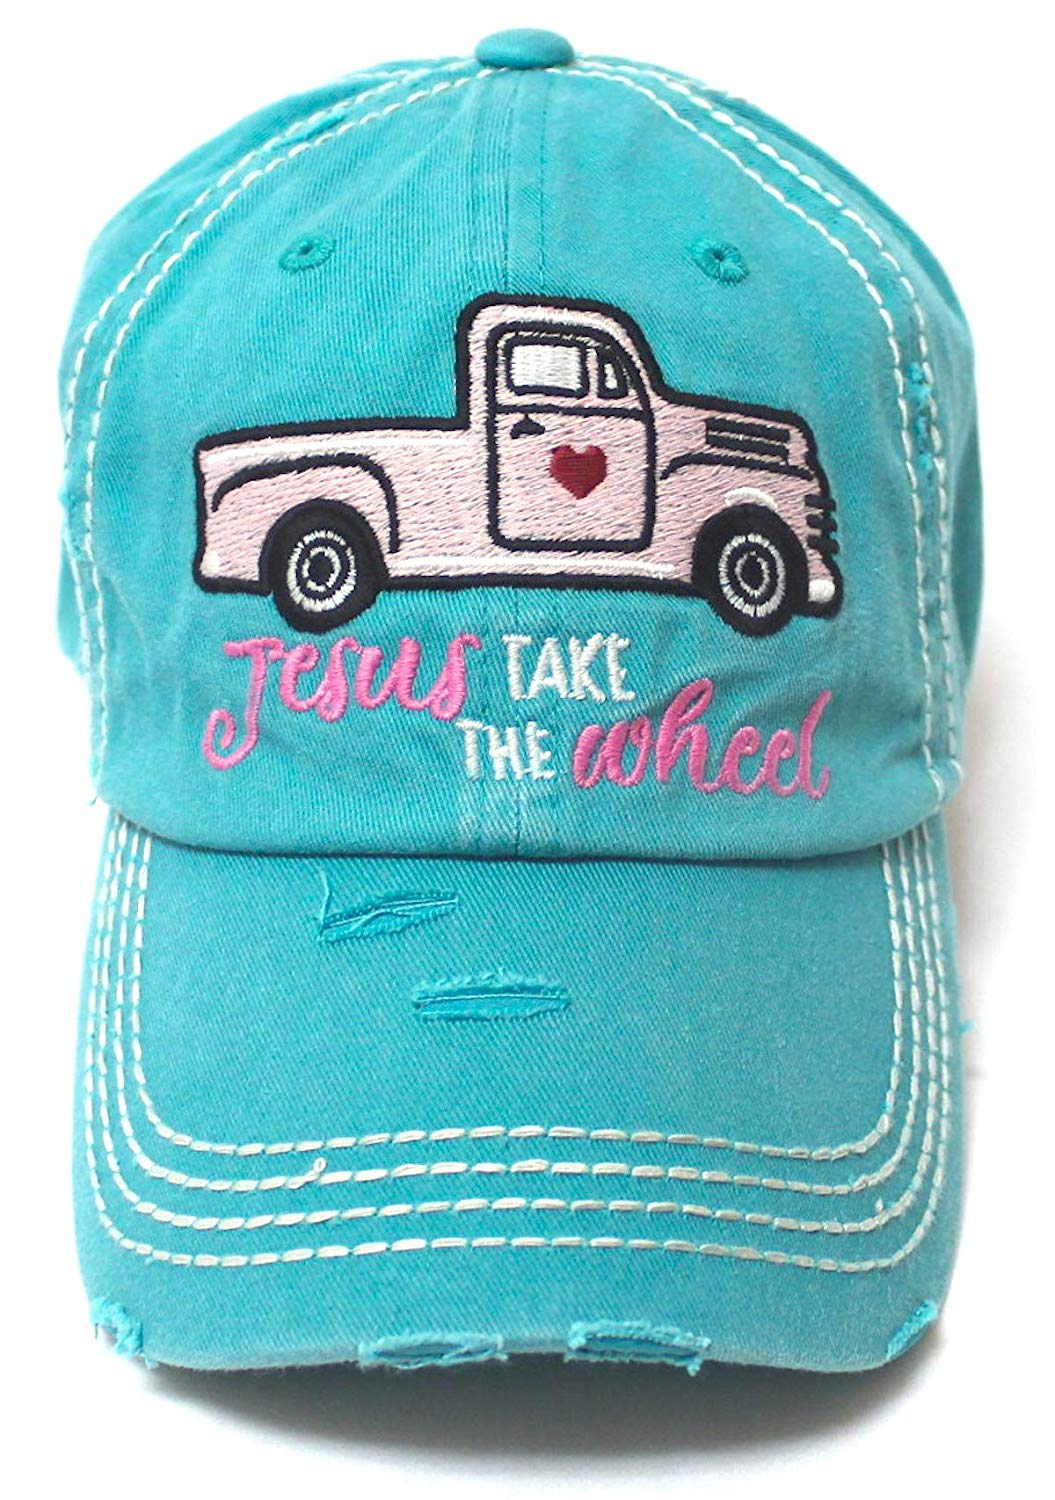 Women's Camping Cap Jesus Take The Wheel Monogram Hippie Truck Hat, Turquoise - Caps 'N Vintage